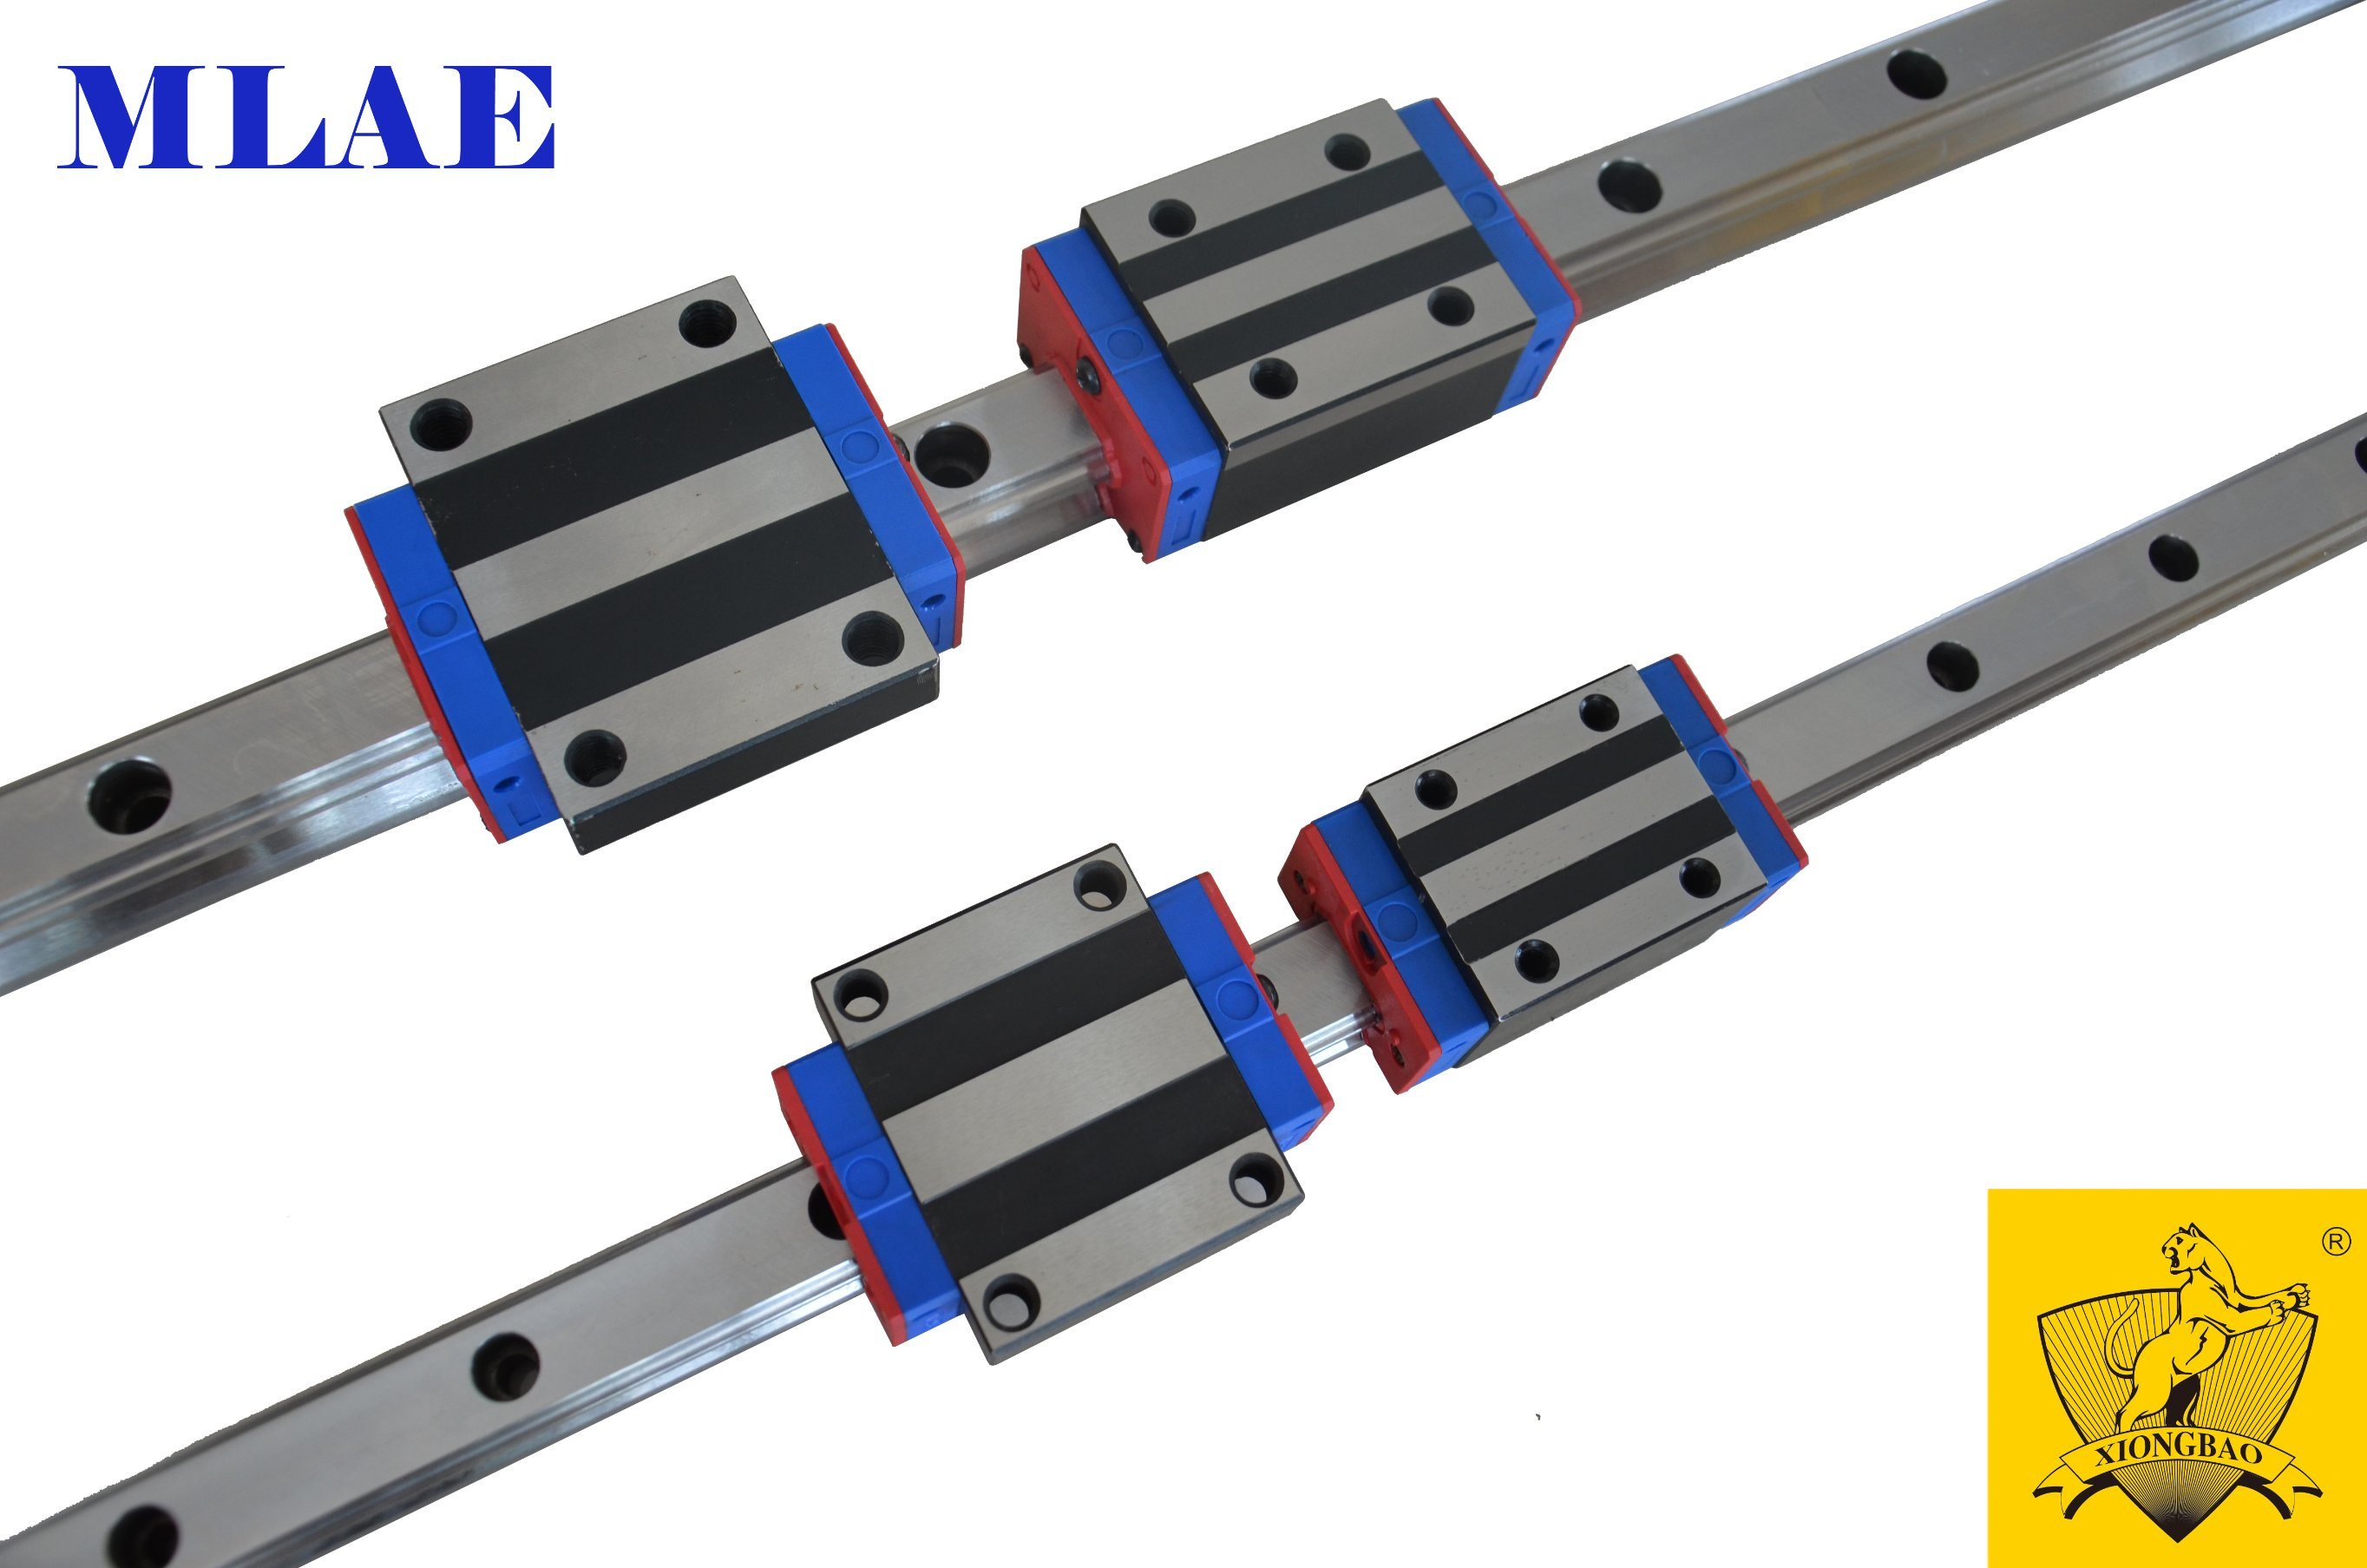 Xbd15 High Precision Linear Rail with Frange Block